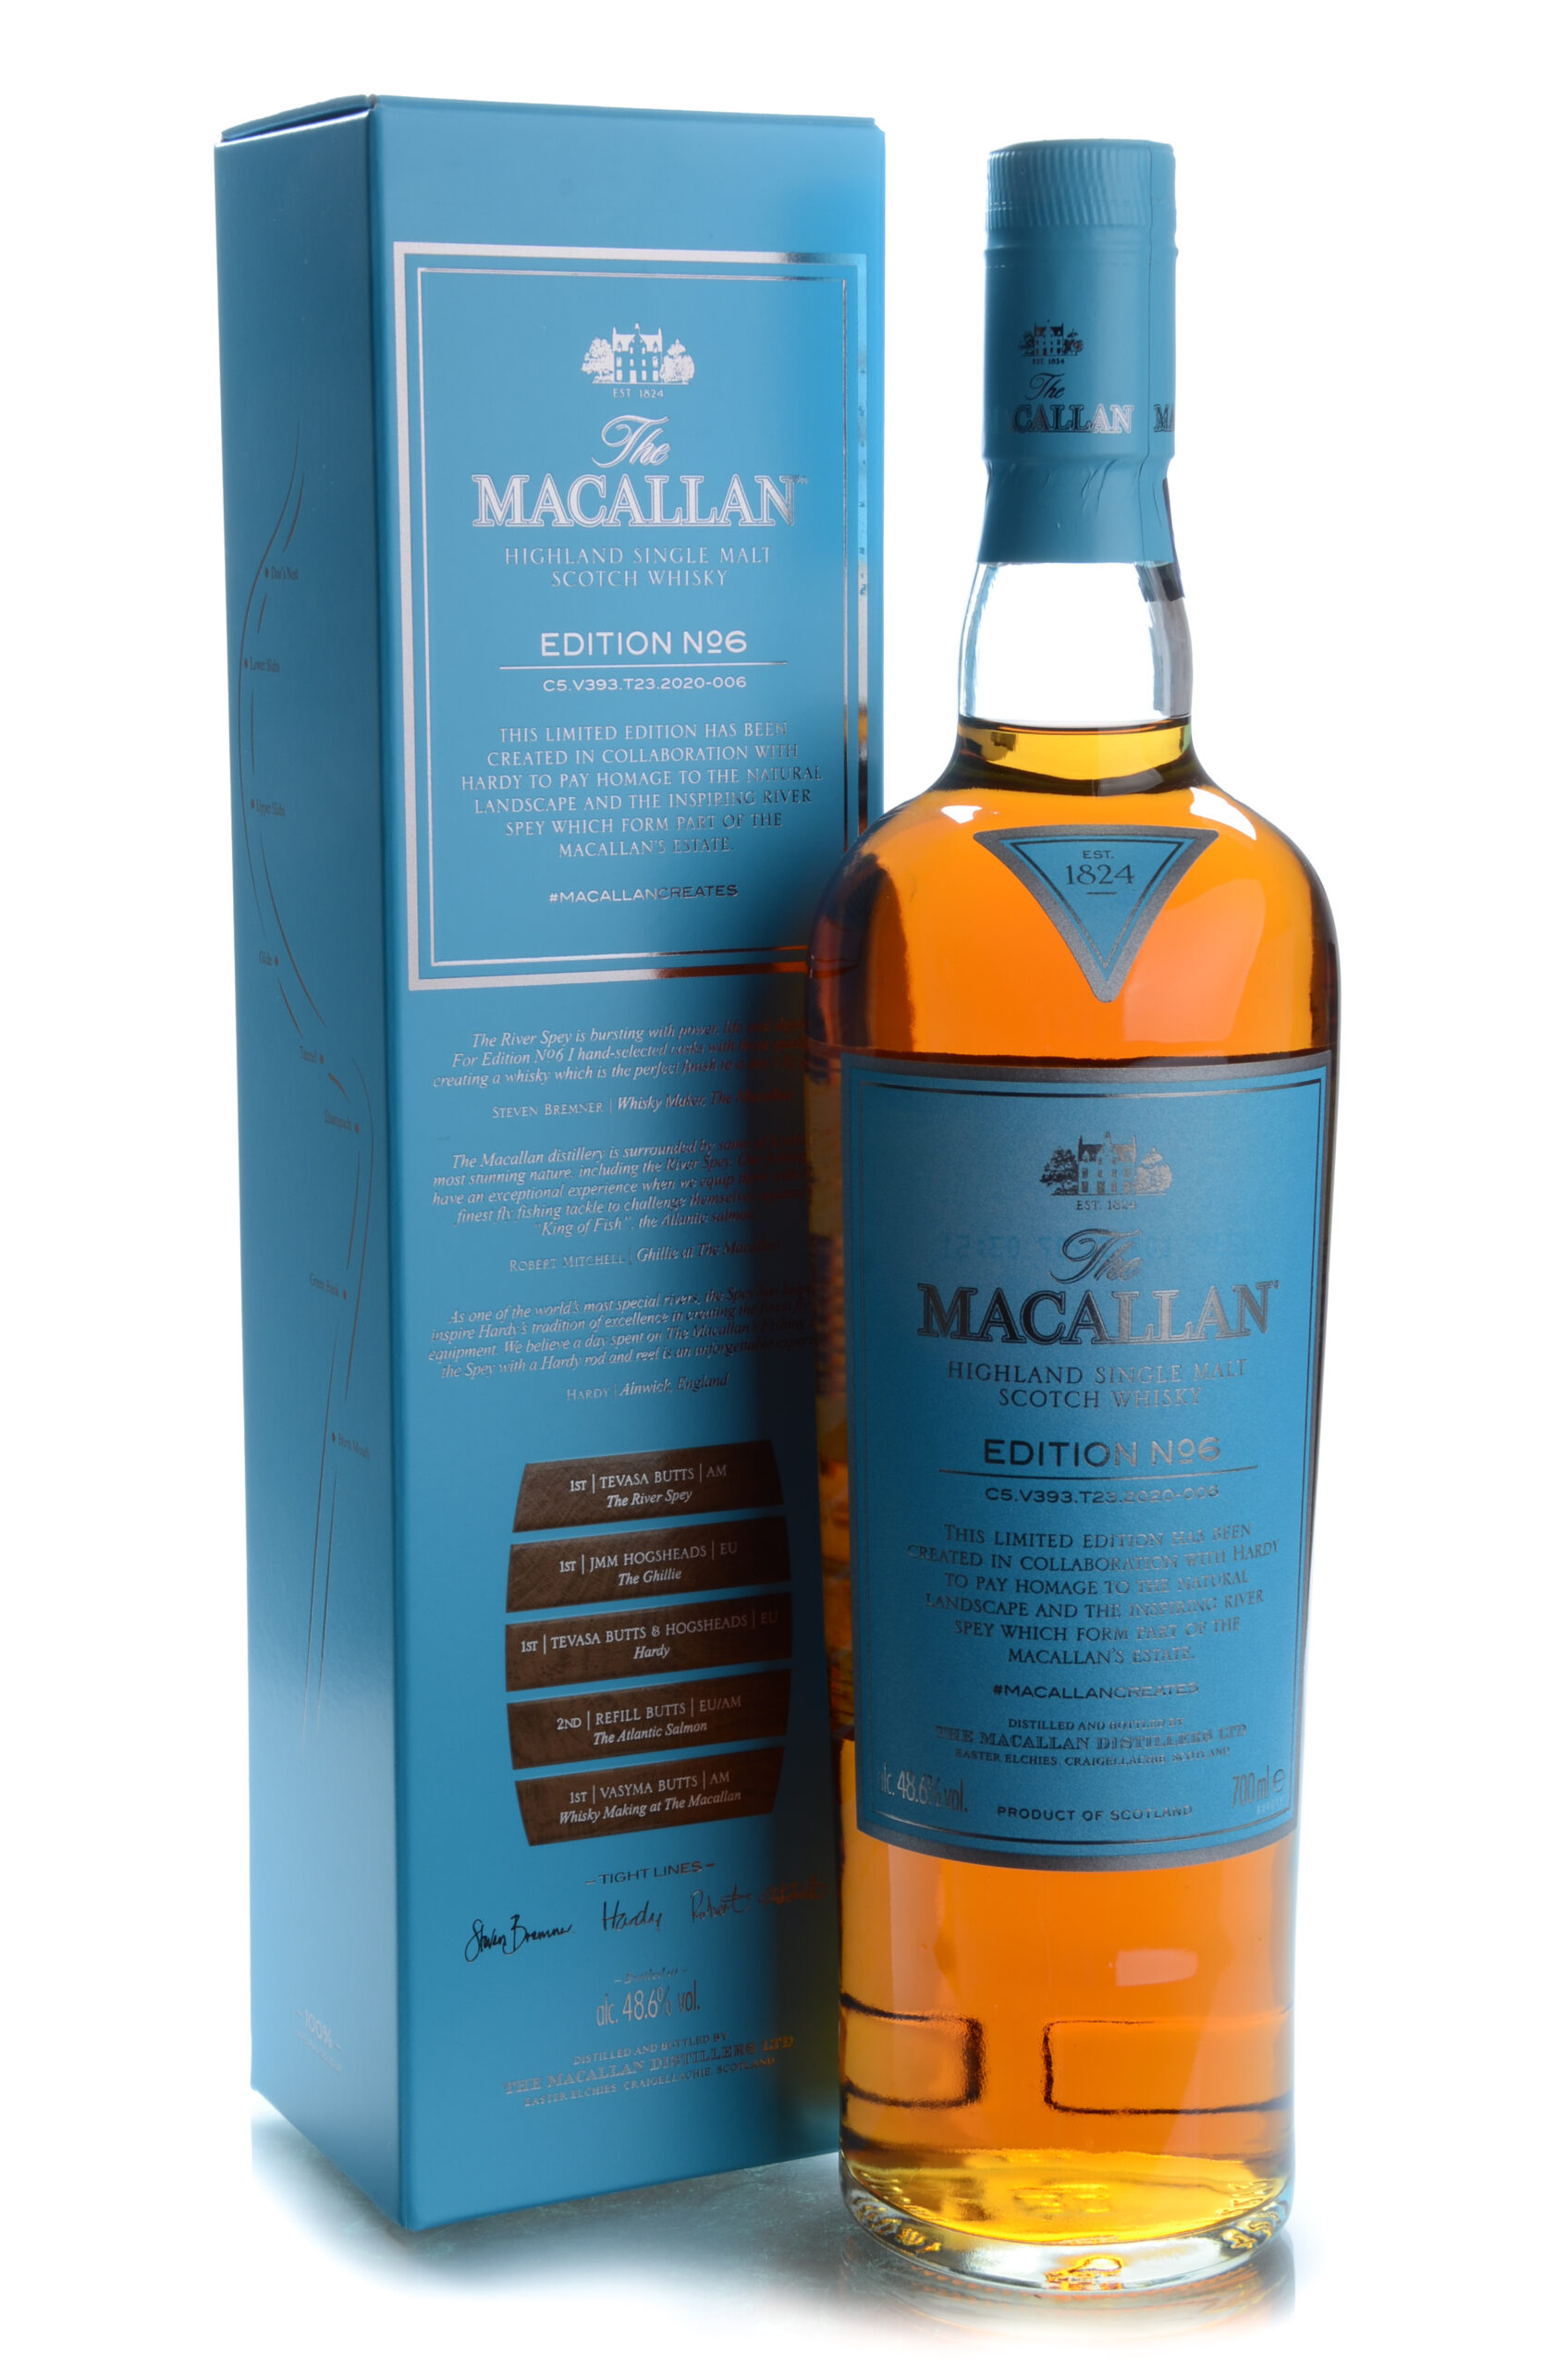 The Macallan Edition N06